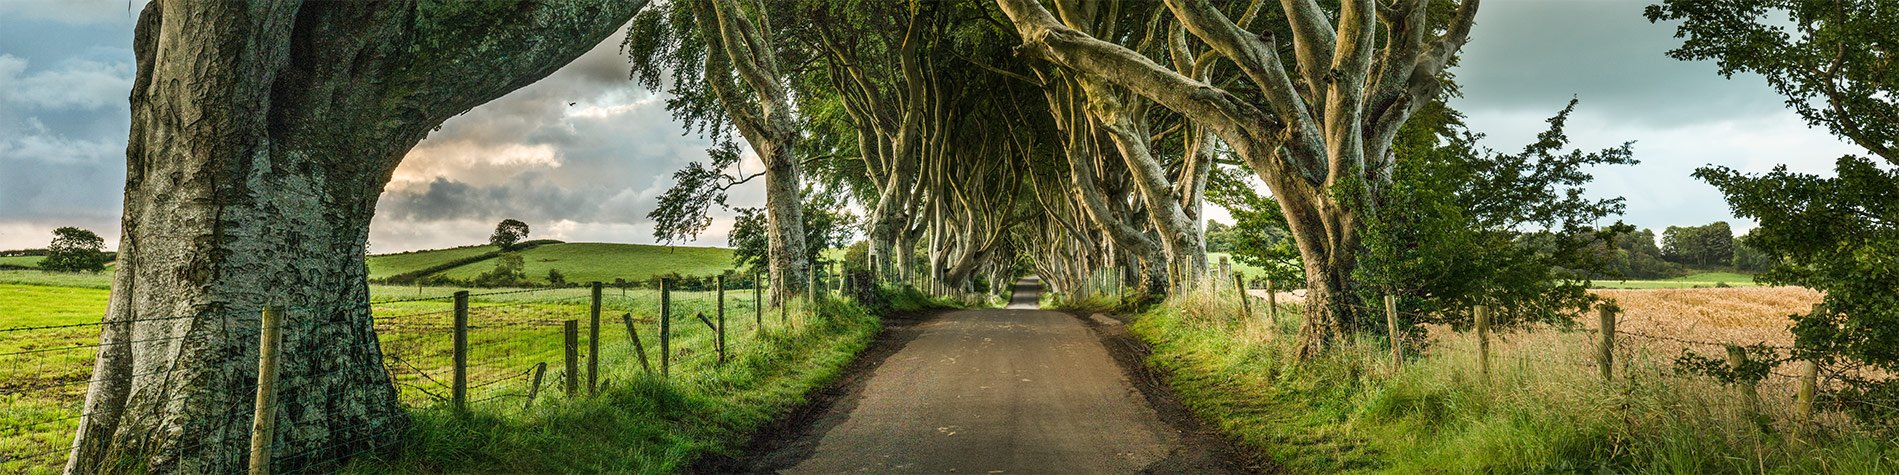 Game of Thrones Activities in Northern Ireland